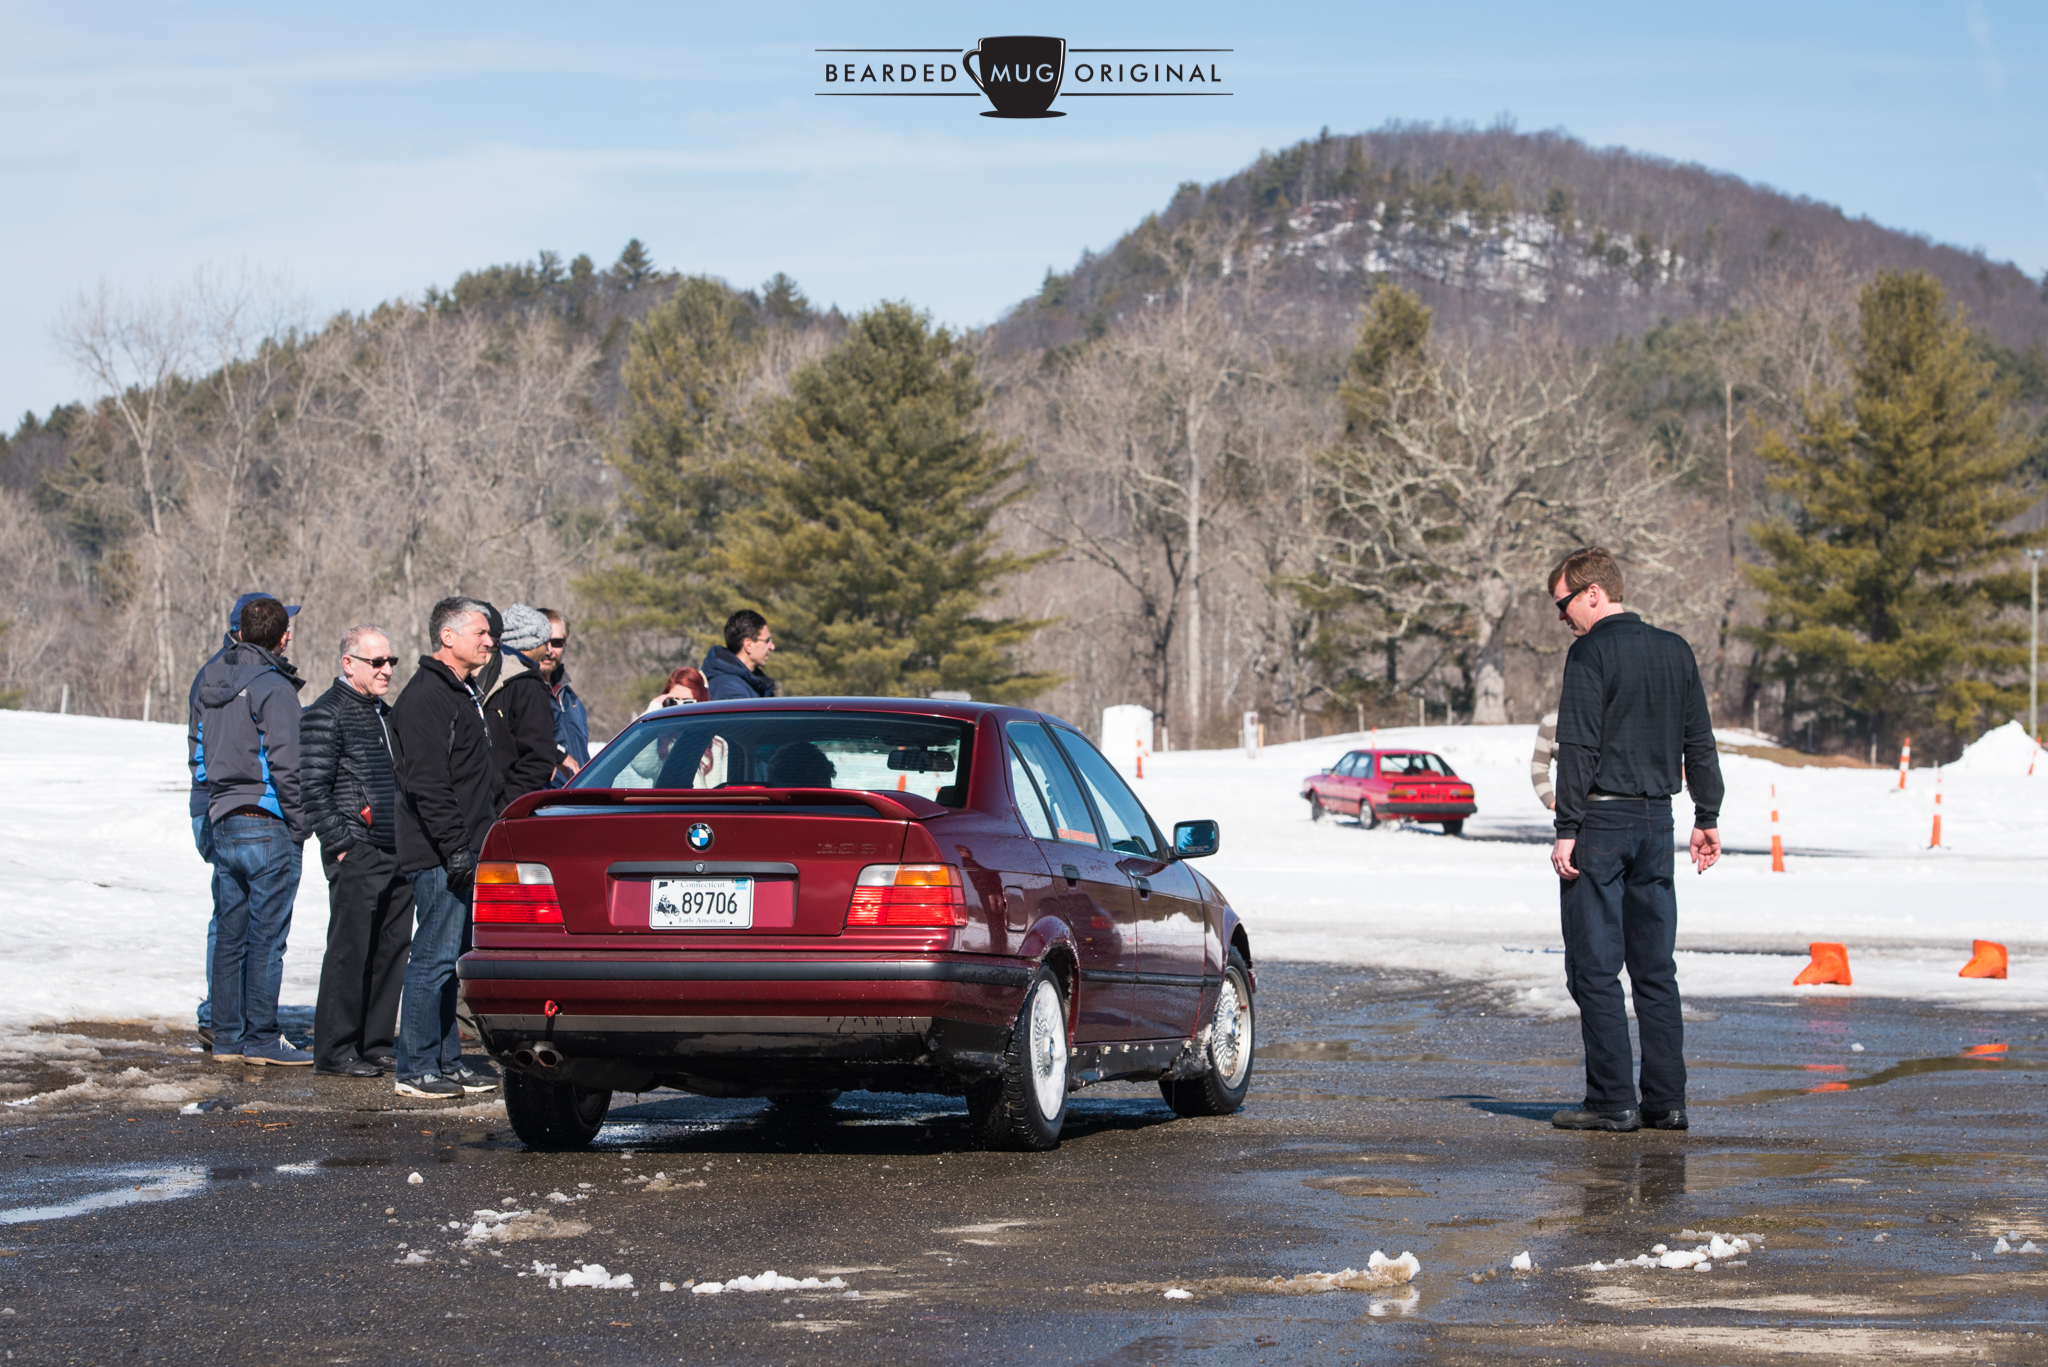 Eager drivers huddle for warmth as they await their turn behind the wheel of the red E36.